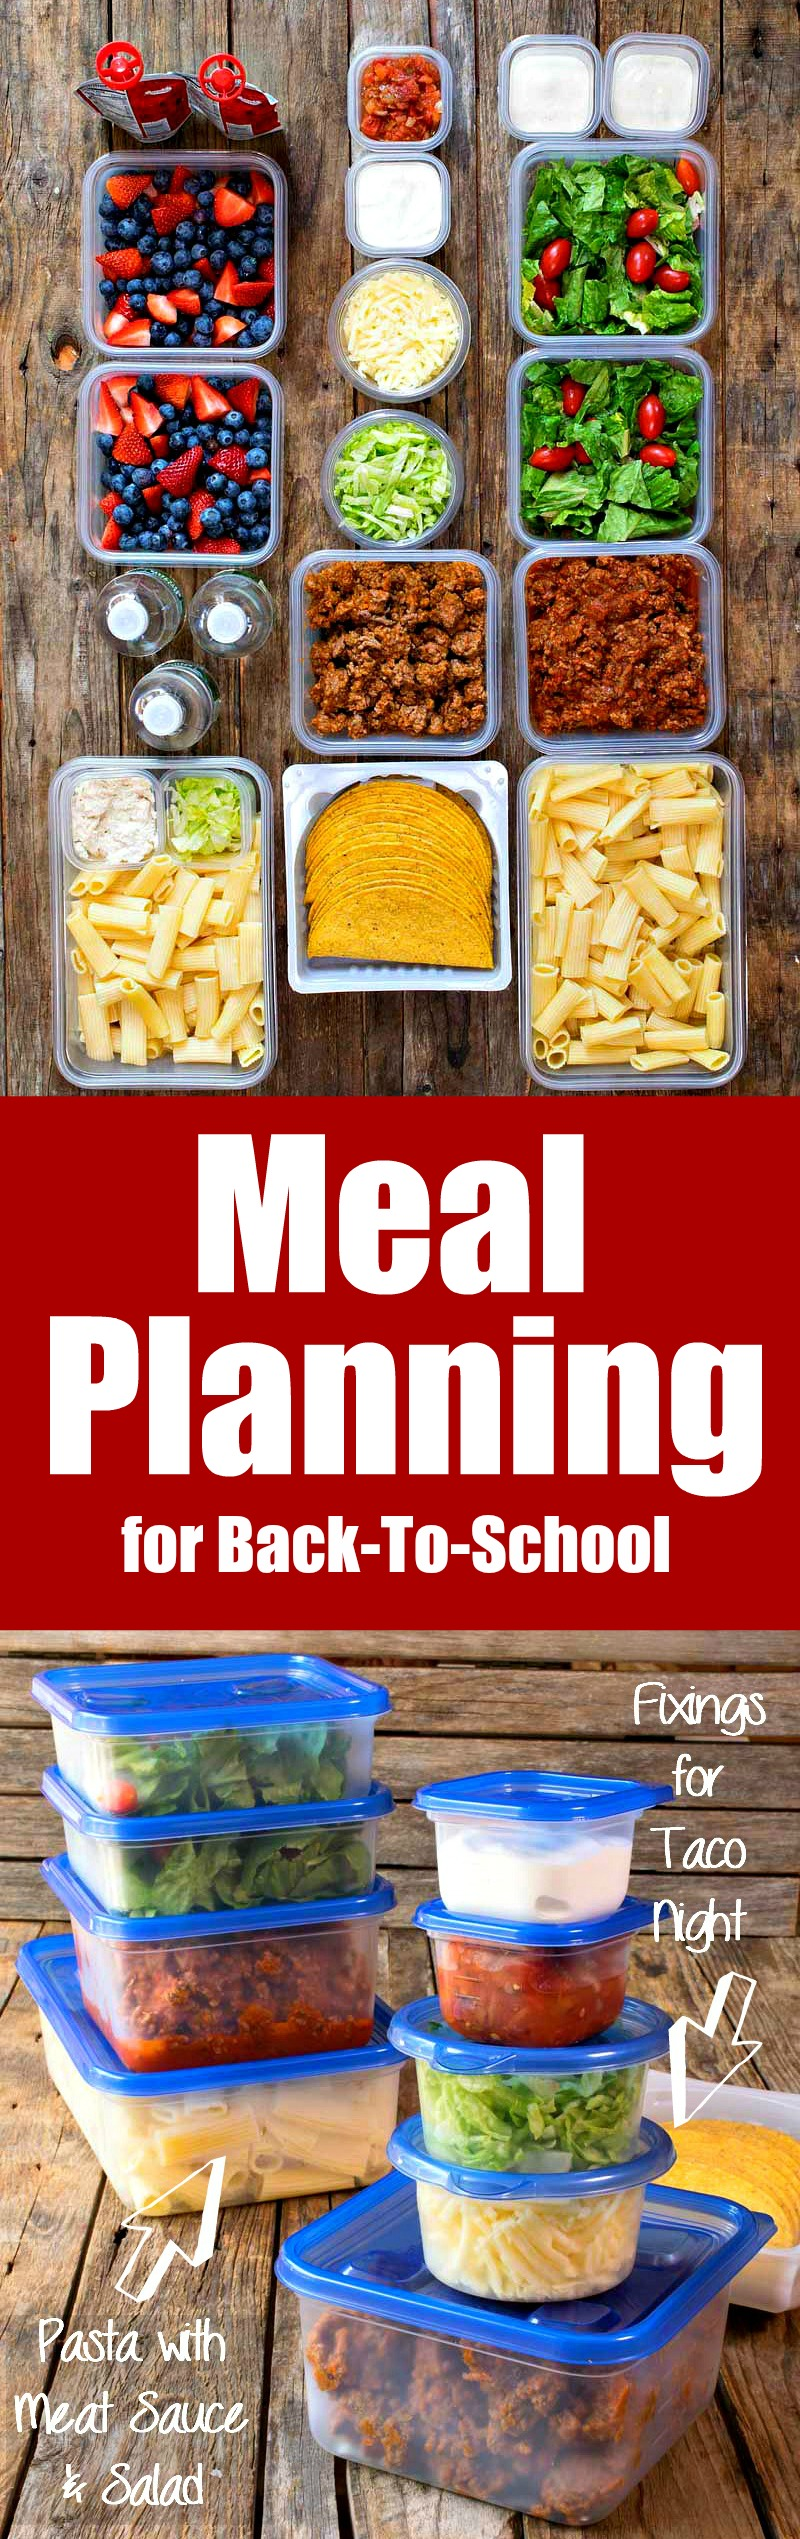 Meal Planning and Meal Prepping - A Family Feast